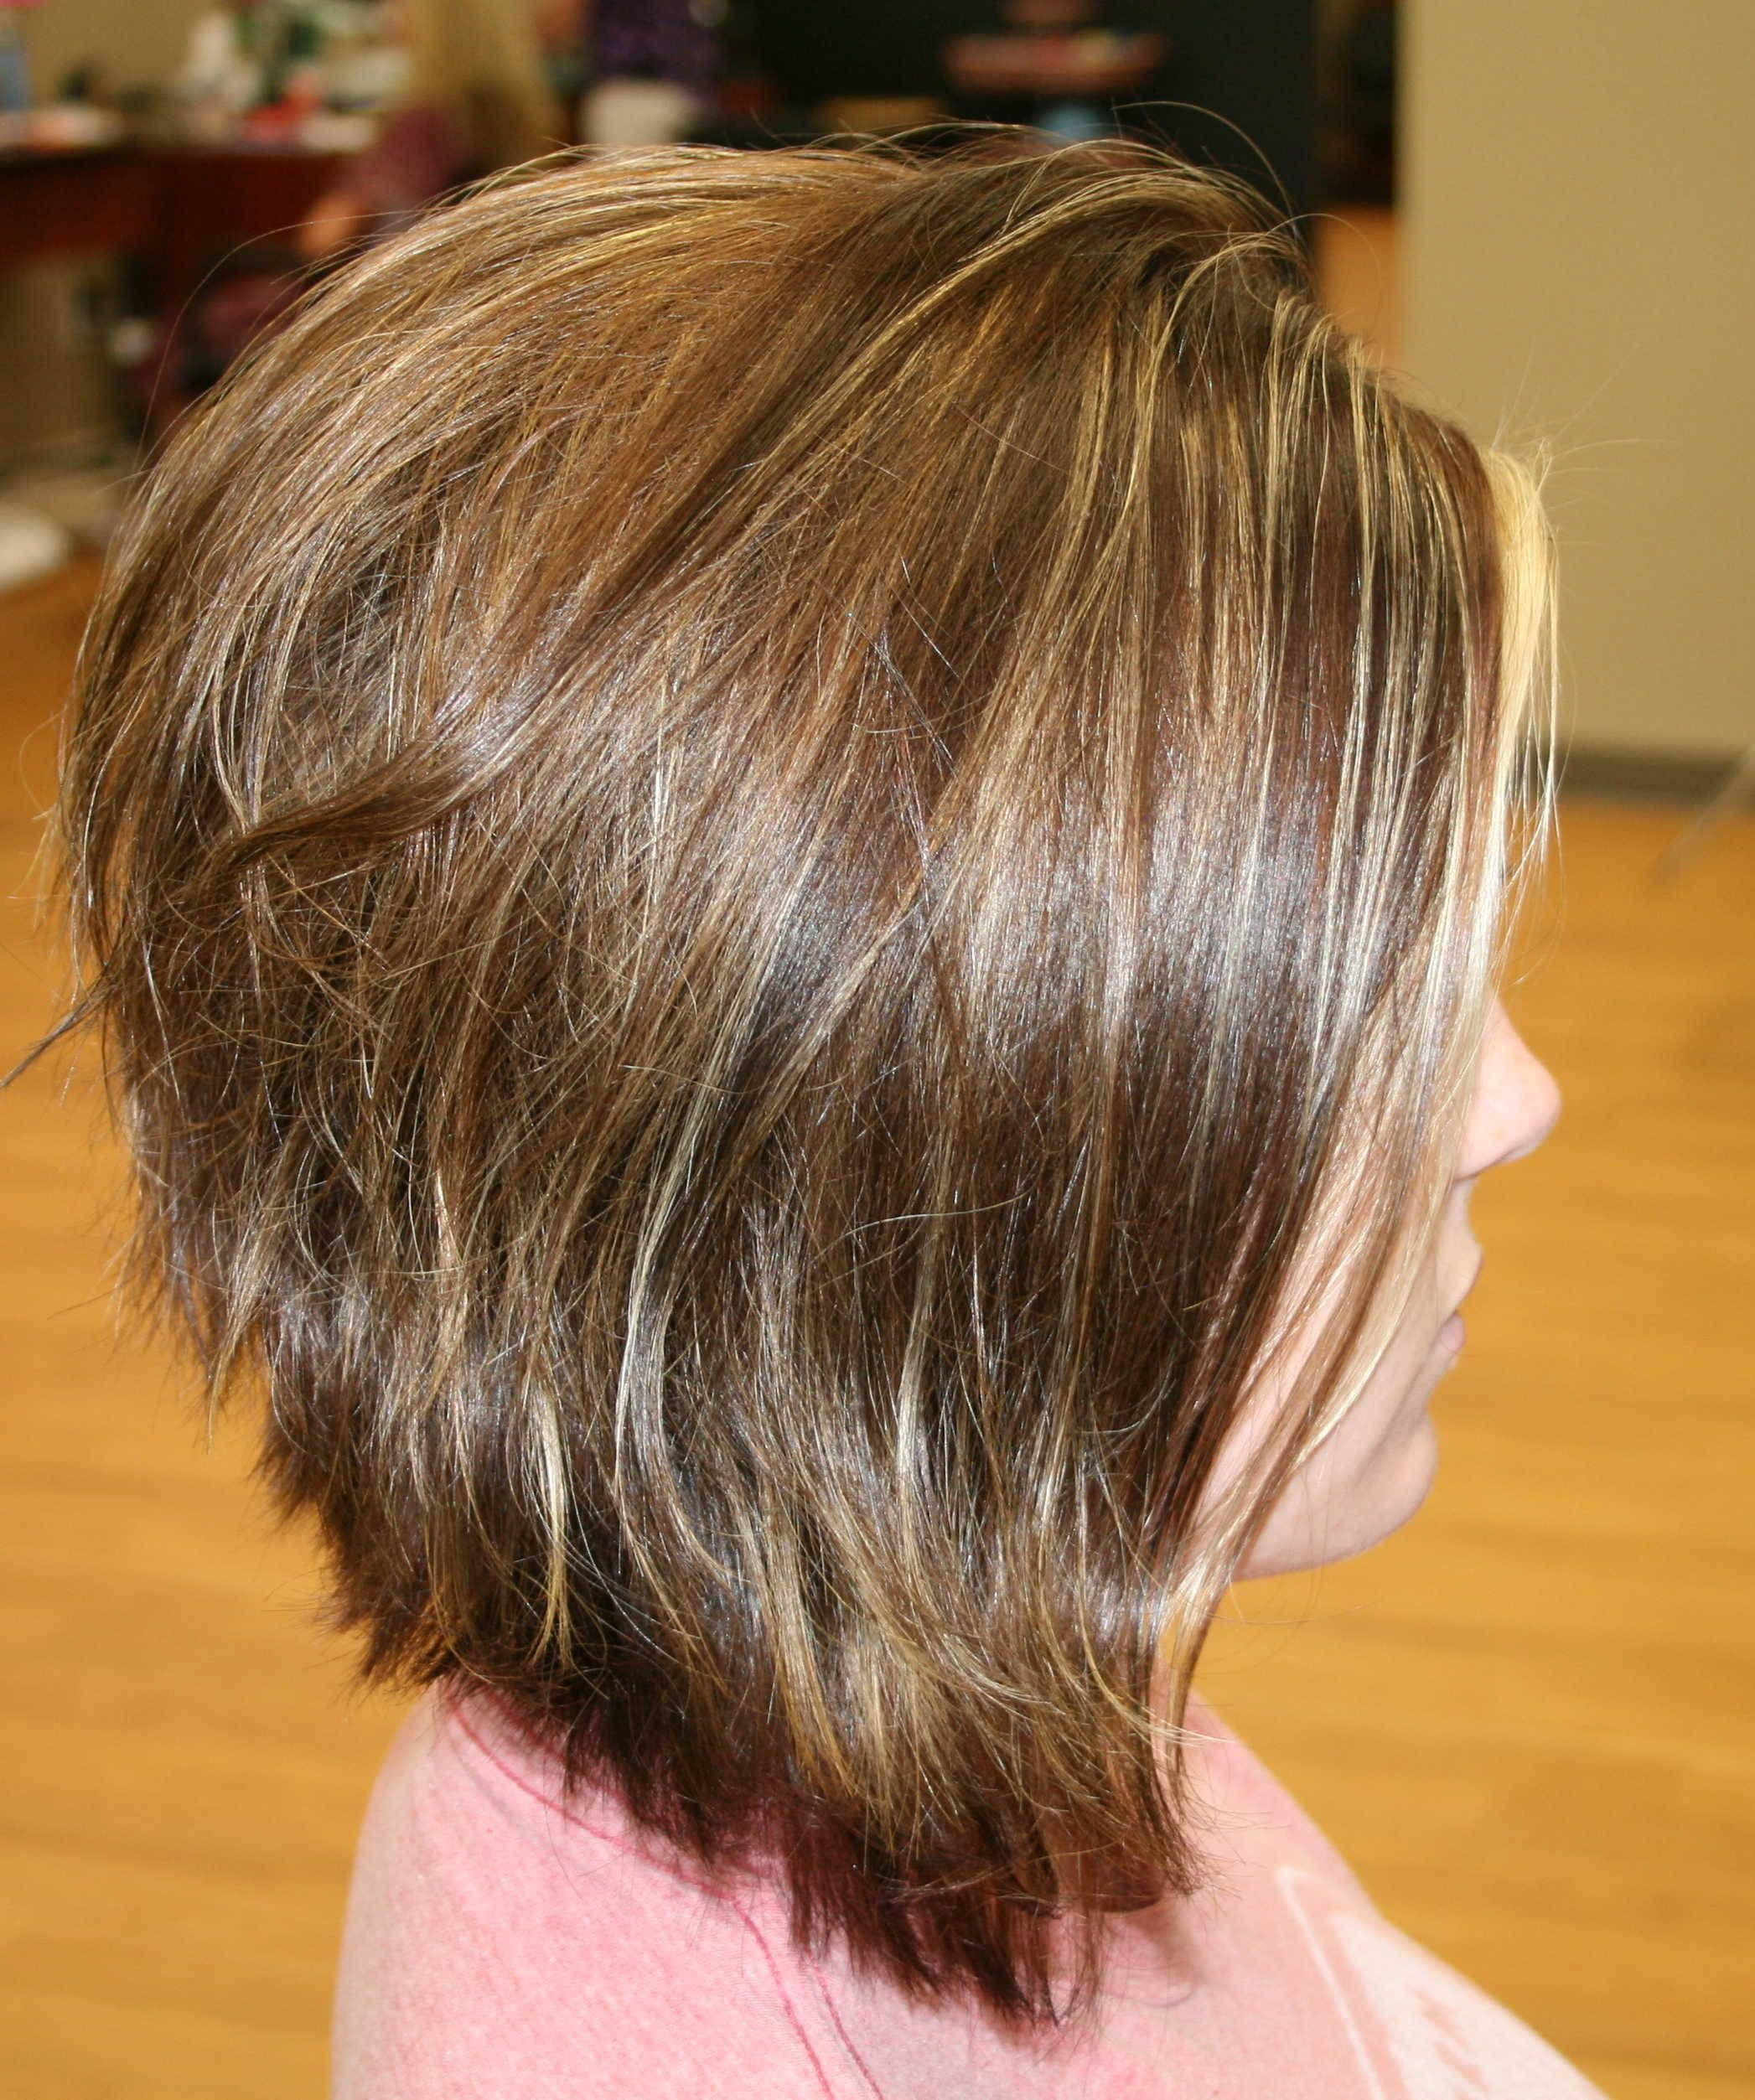 Hair styles haircuts and color and the hottest trends razor cuts